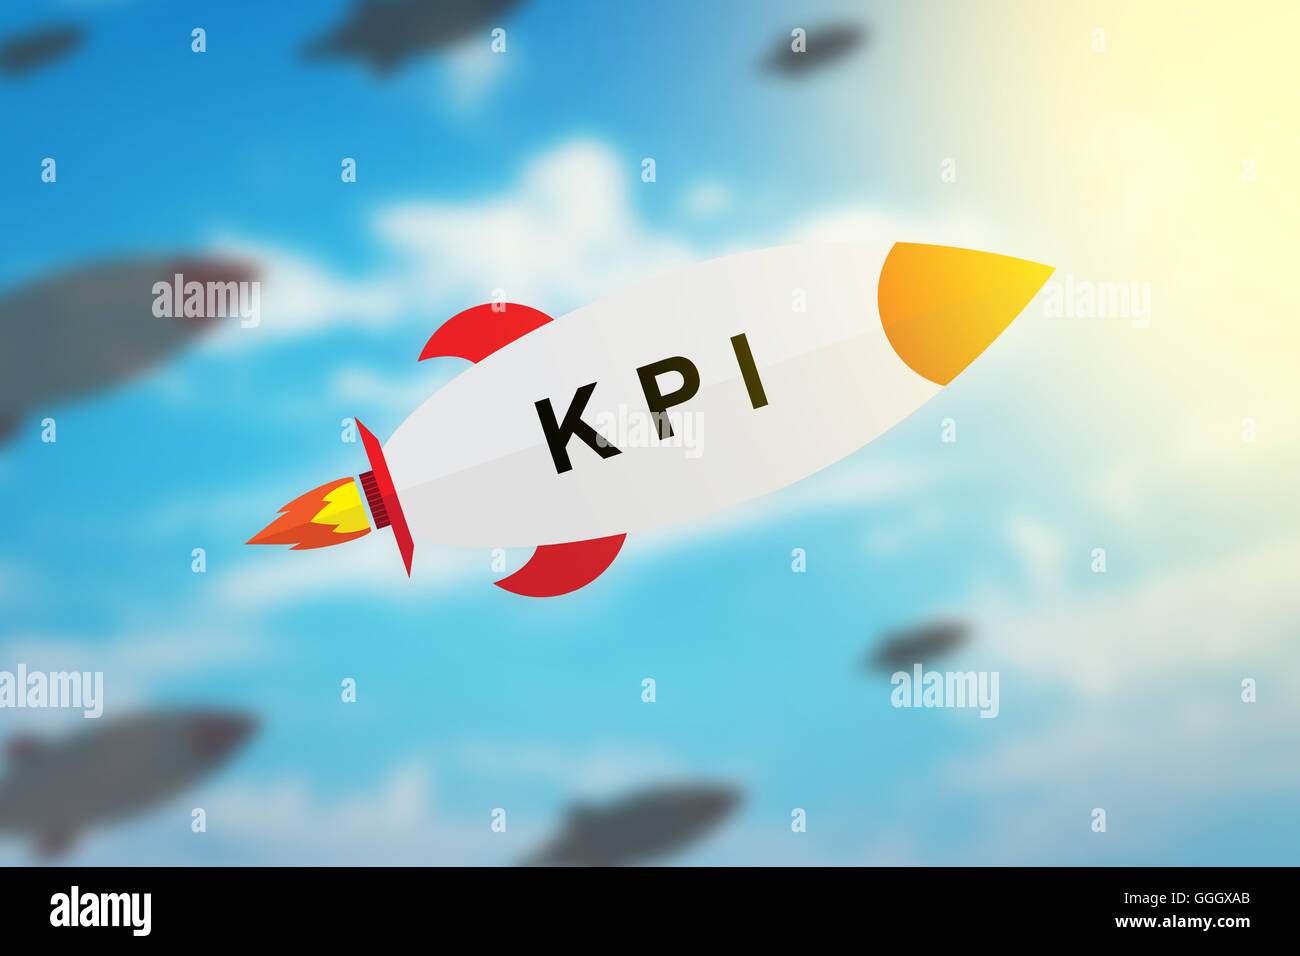 group of KPI or key performance indicator flat design rocket with blurred background and soft light effect - Stock Image